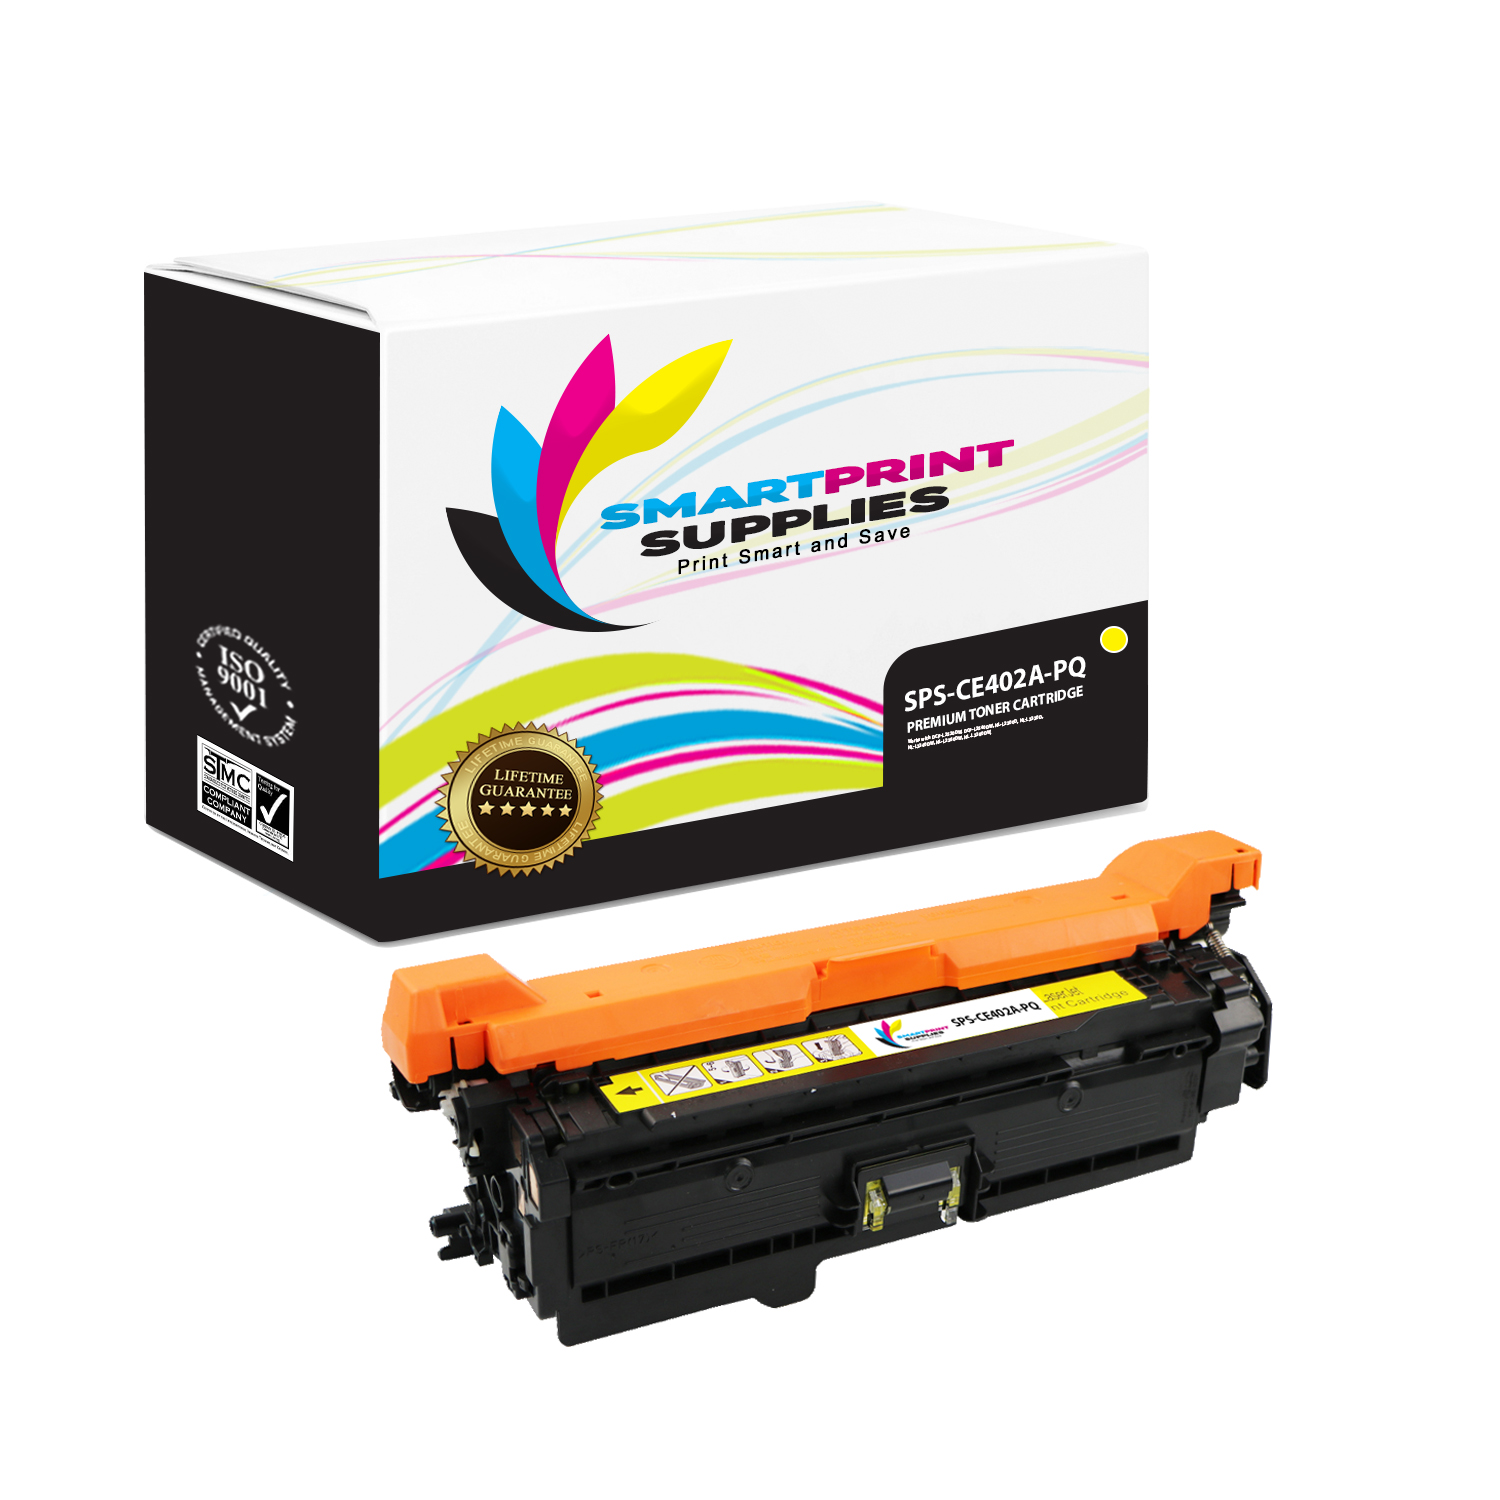 1PK Cyan Toner For HP CE401A 507A LaserJet Enterprise 500 Color M551dn MFP M575f